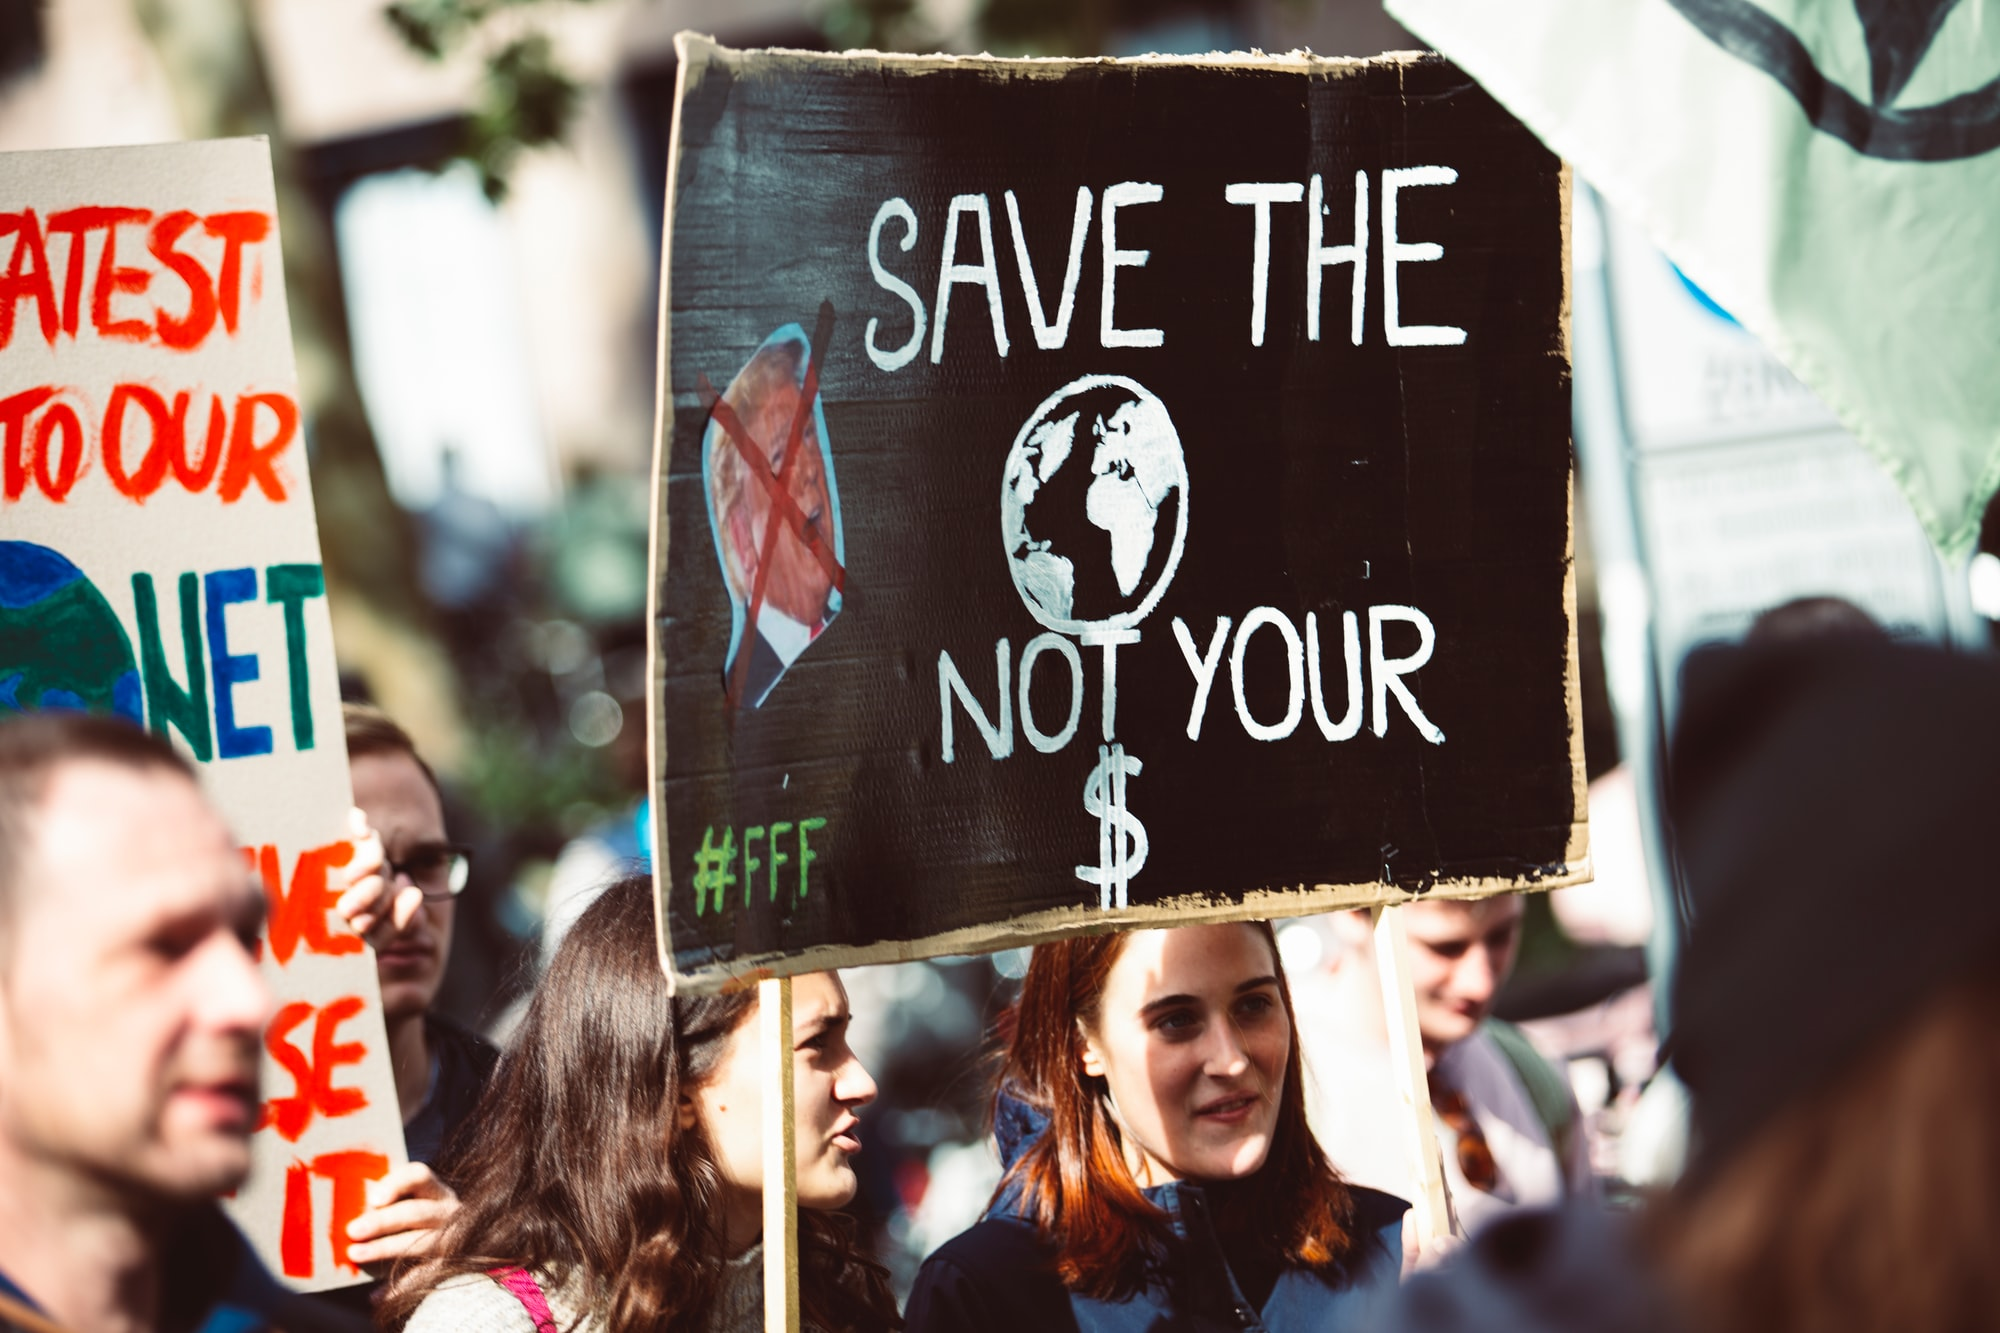 SAVE THE WORLD NOT YOUR $ DOLLARS. Global climate change protest demontration strike - No Planet B - 09-20-2019